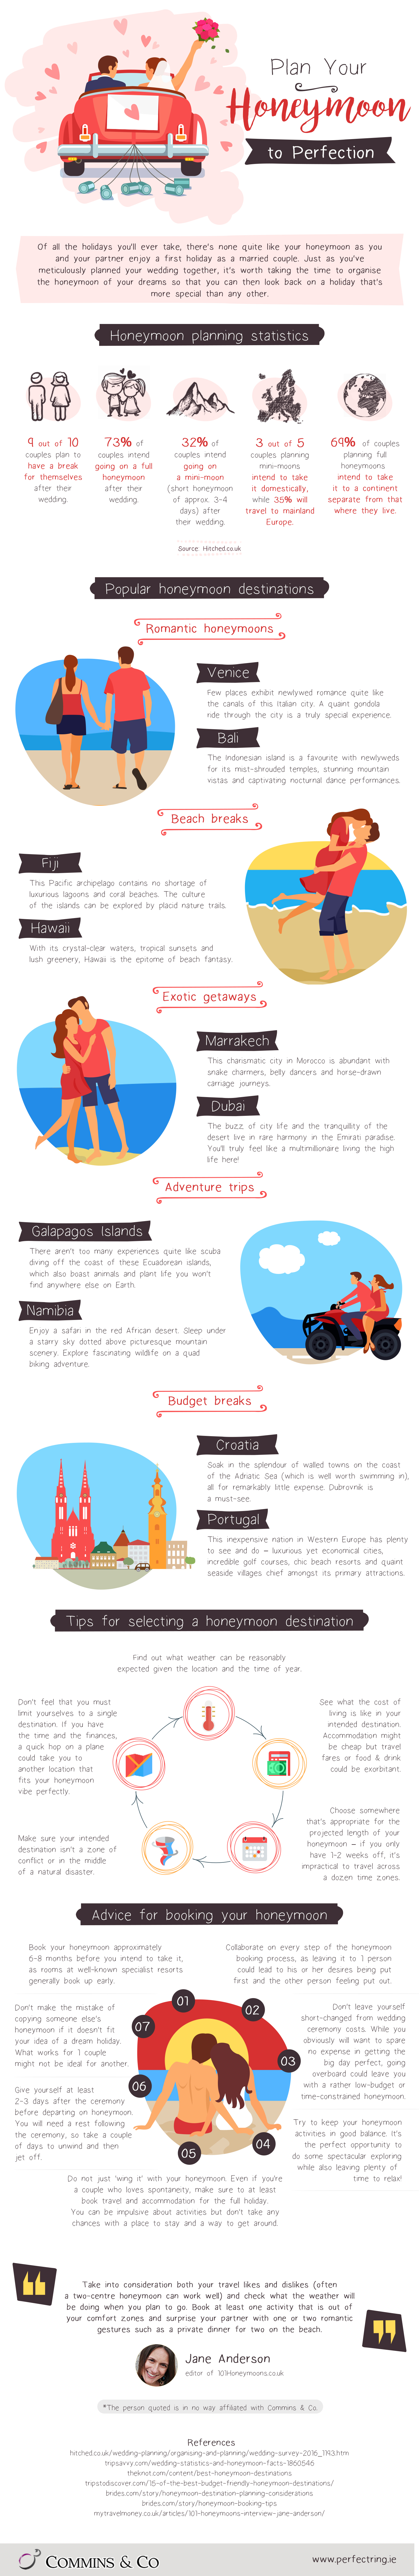 Plan-Your-Honeymoon-to-Perfection-Infographic